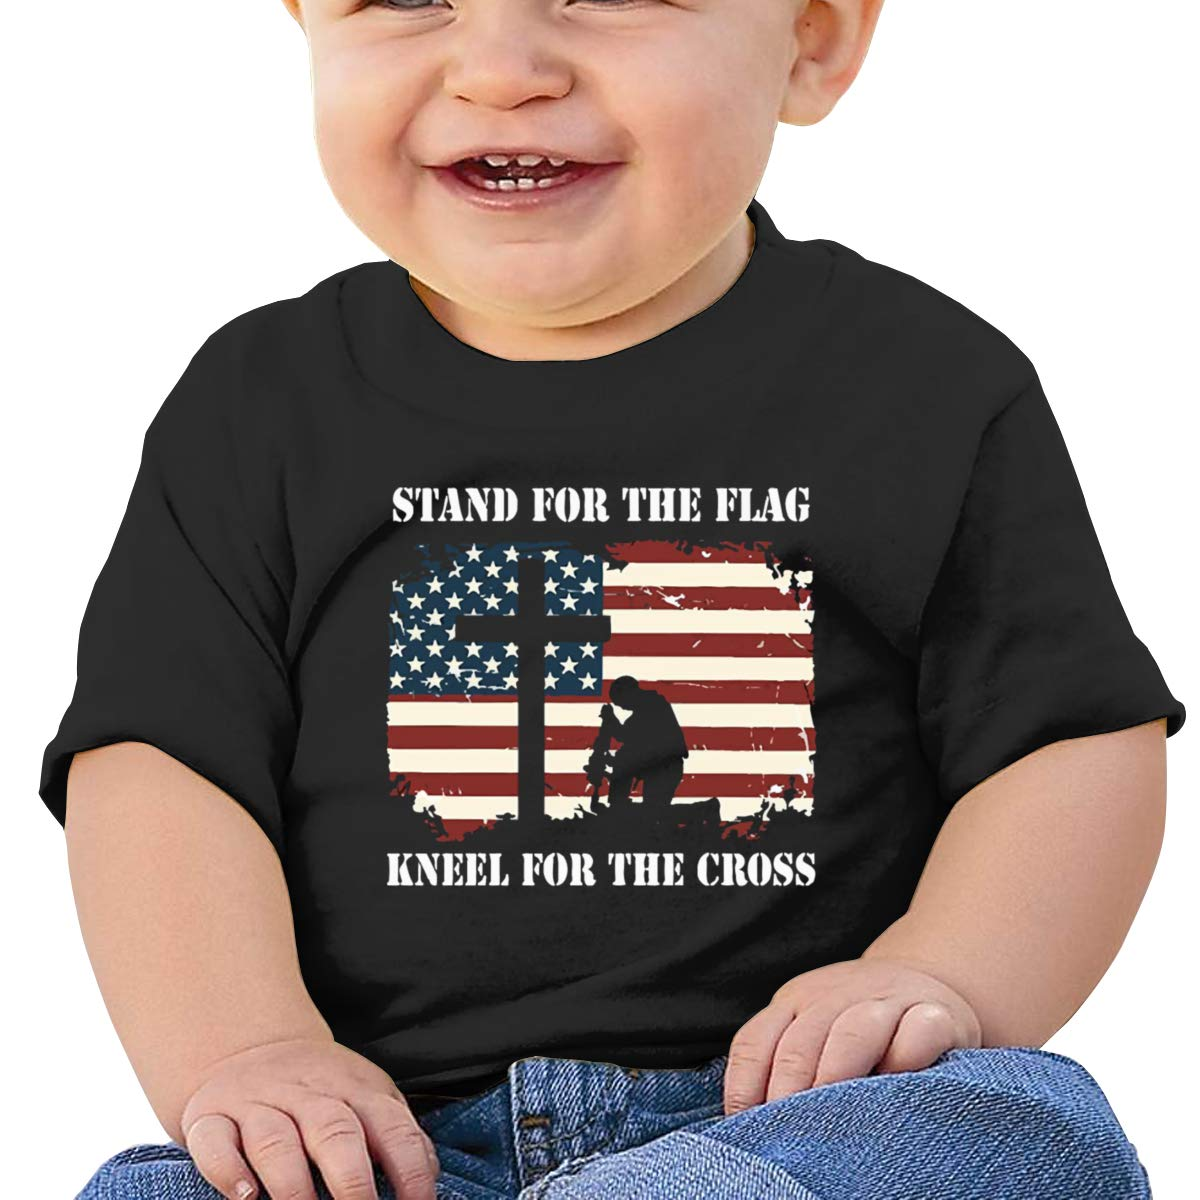 Stand for The Flag and Kneel for The Cross T-Shirts Baby Boy Infant